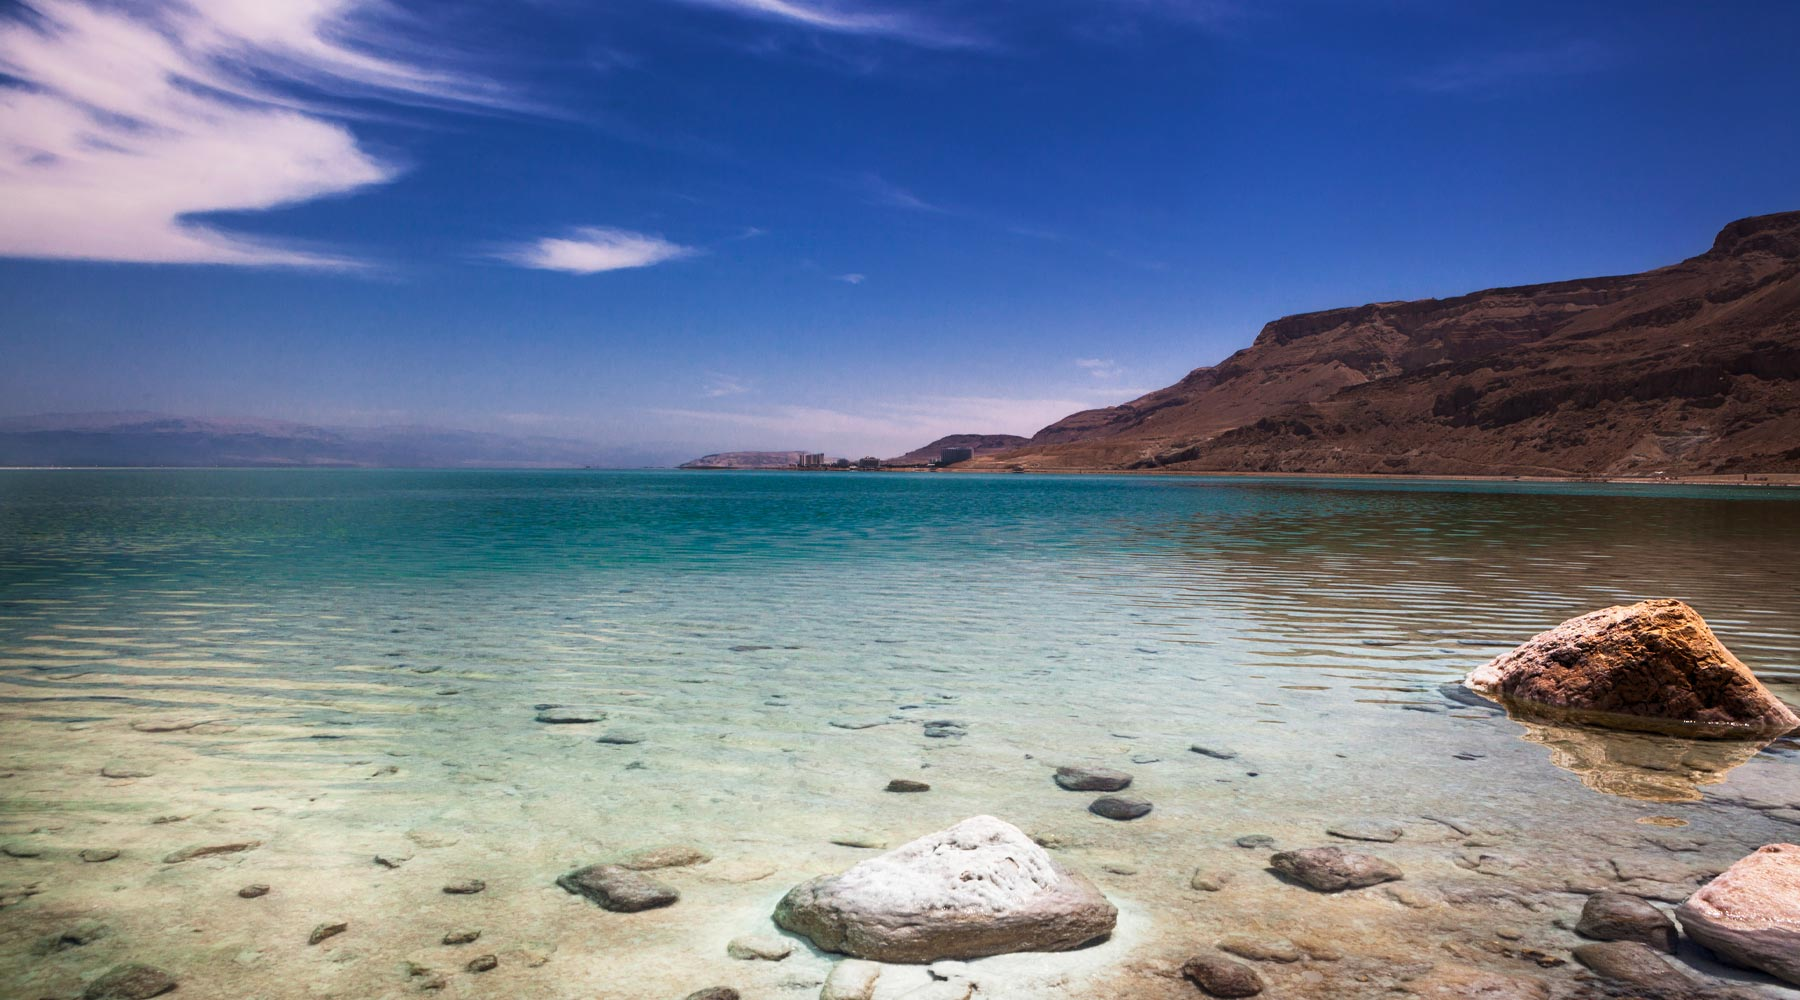 The Dead Sea - The Lowest Spot on Earth 1